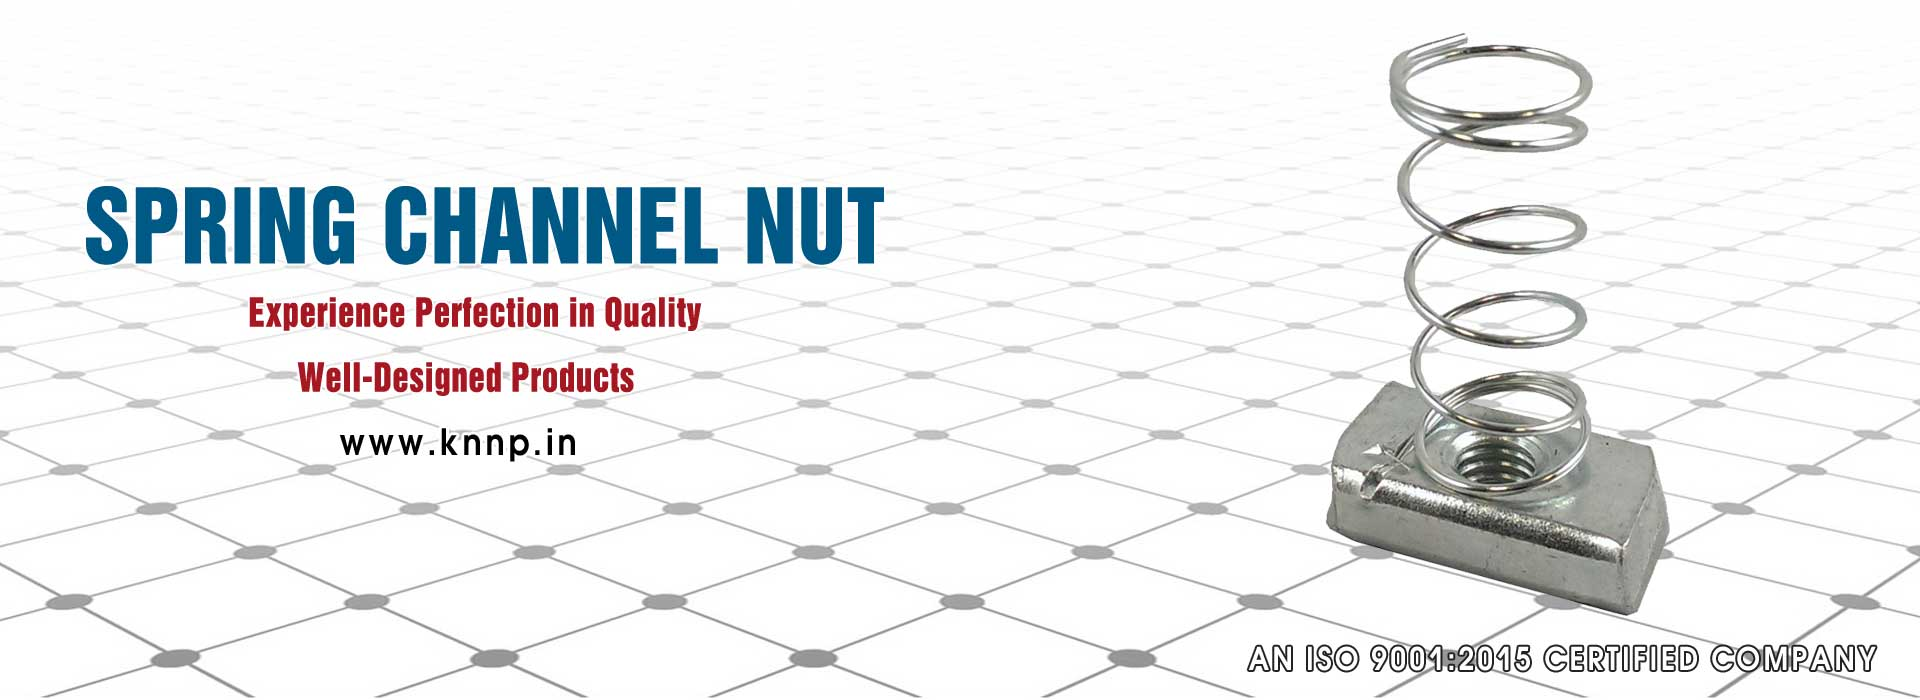 spring channel nut manufacturers suppliers in india punjab ludhiana